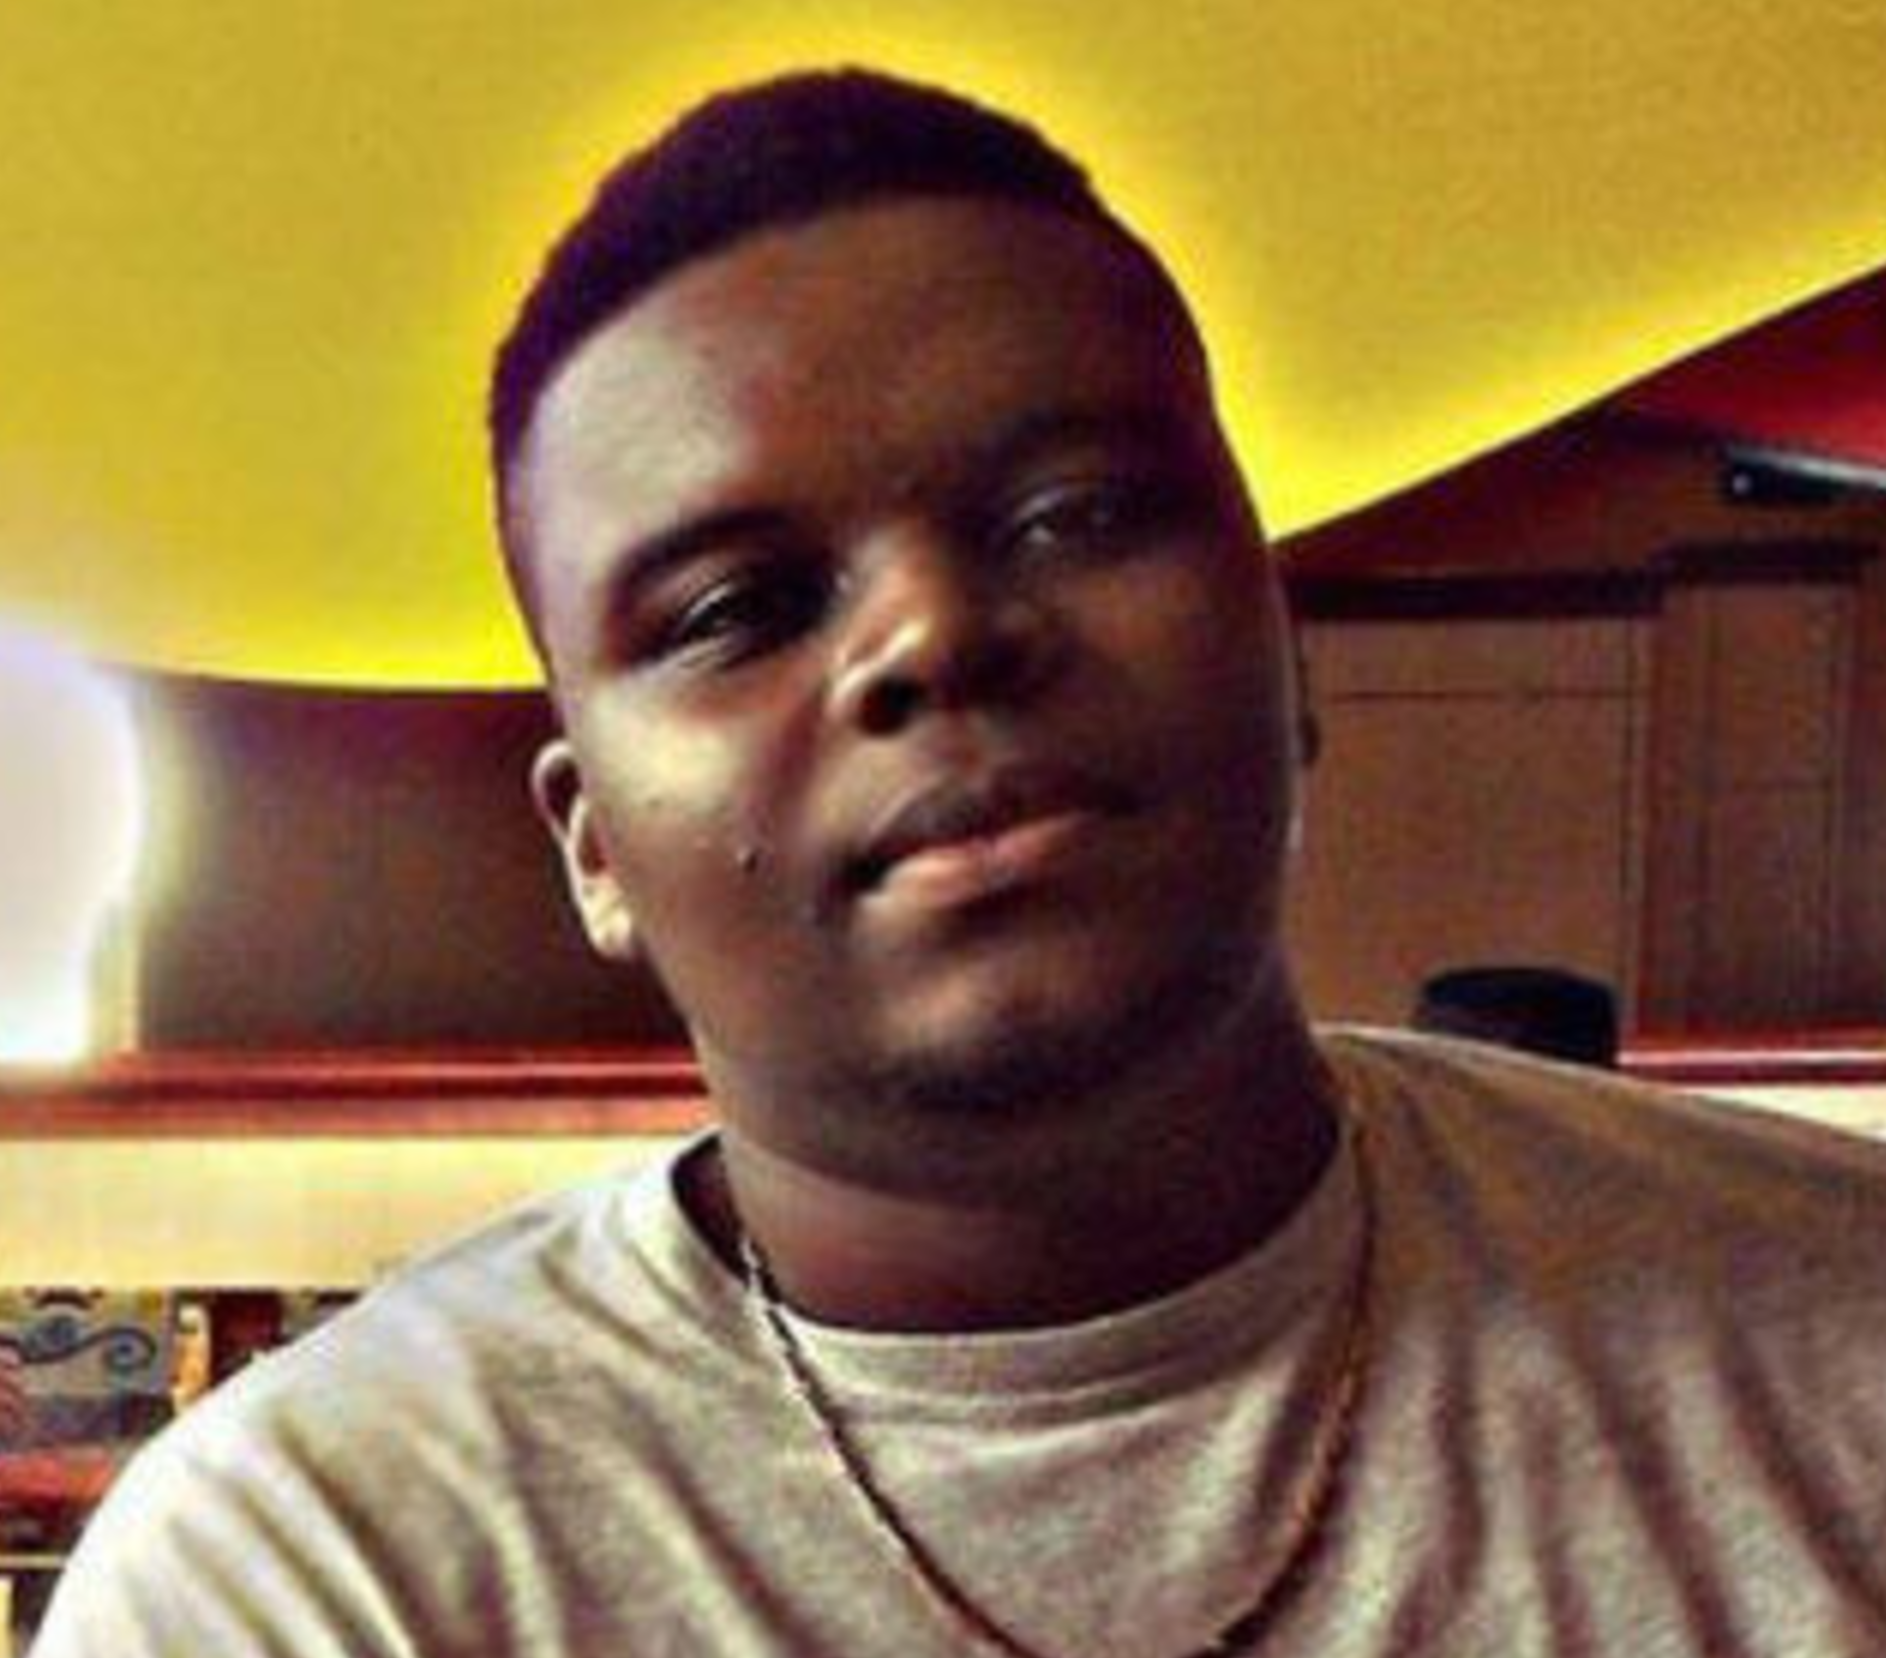 The Michael Brown Incident Revisited